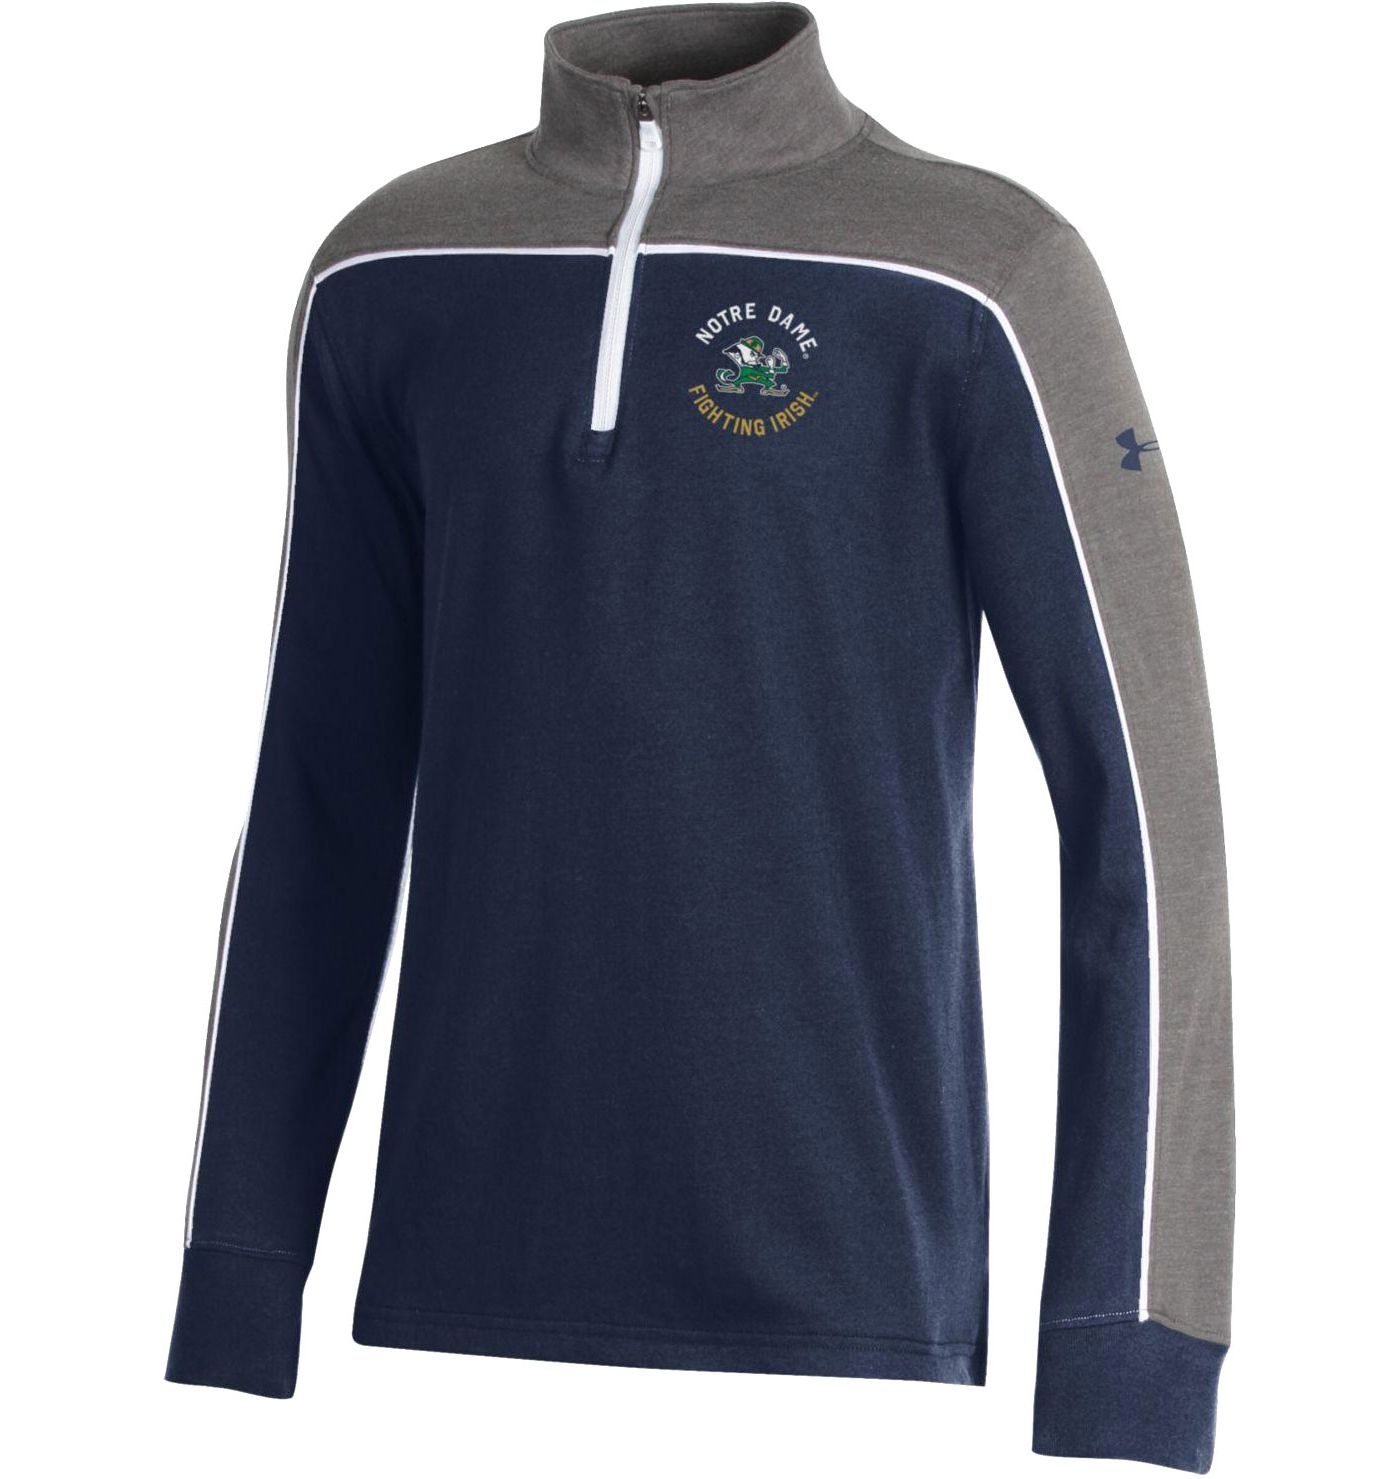 Under Armour Youth Notre Dame Fighting Irish Navy Tri-Color Charged Cotton Quarter-Zip Shirt